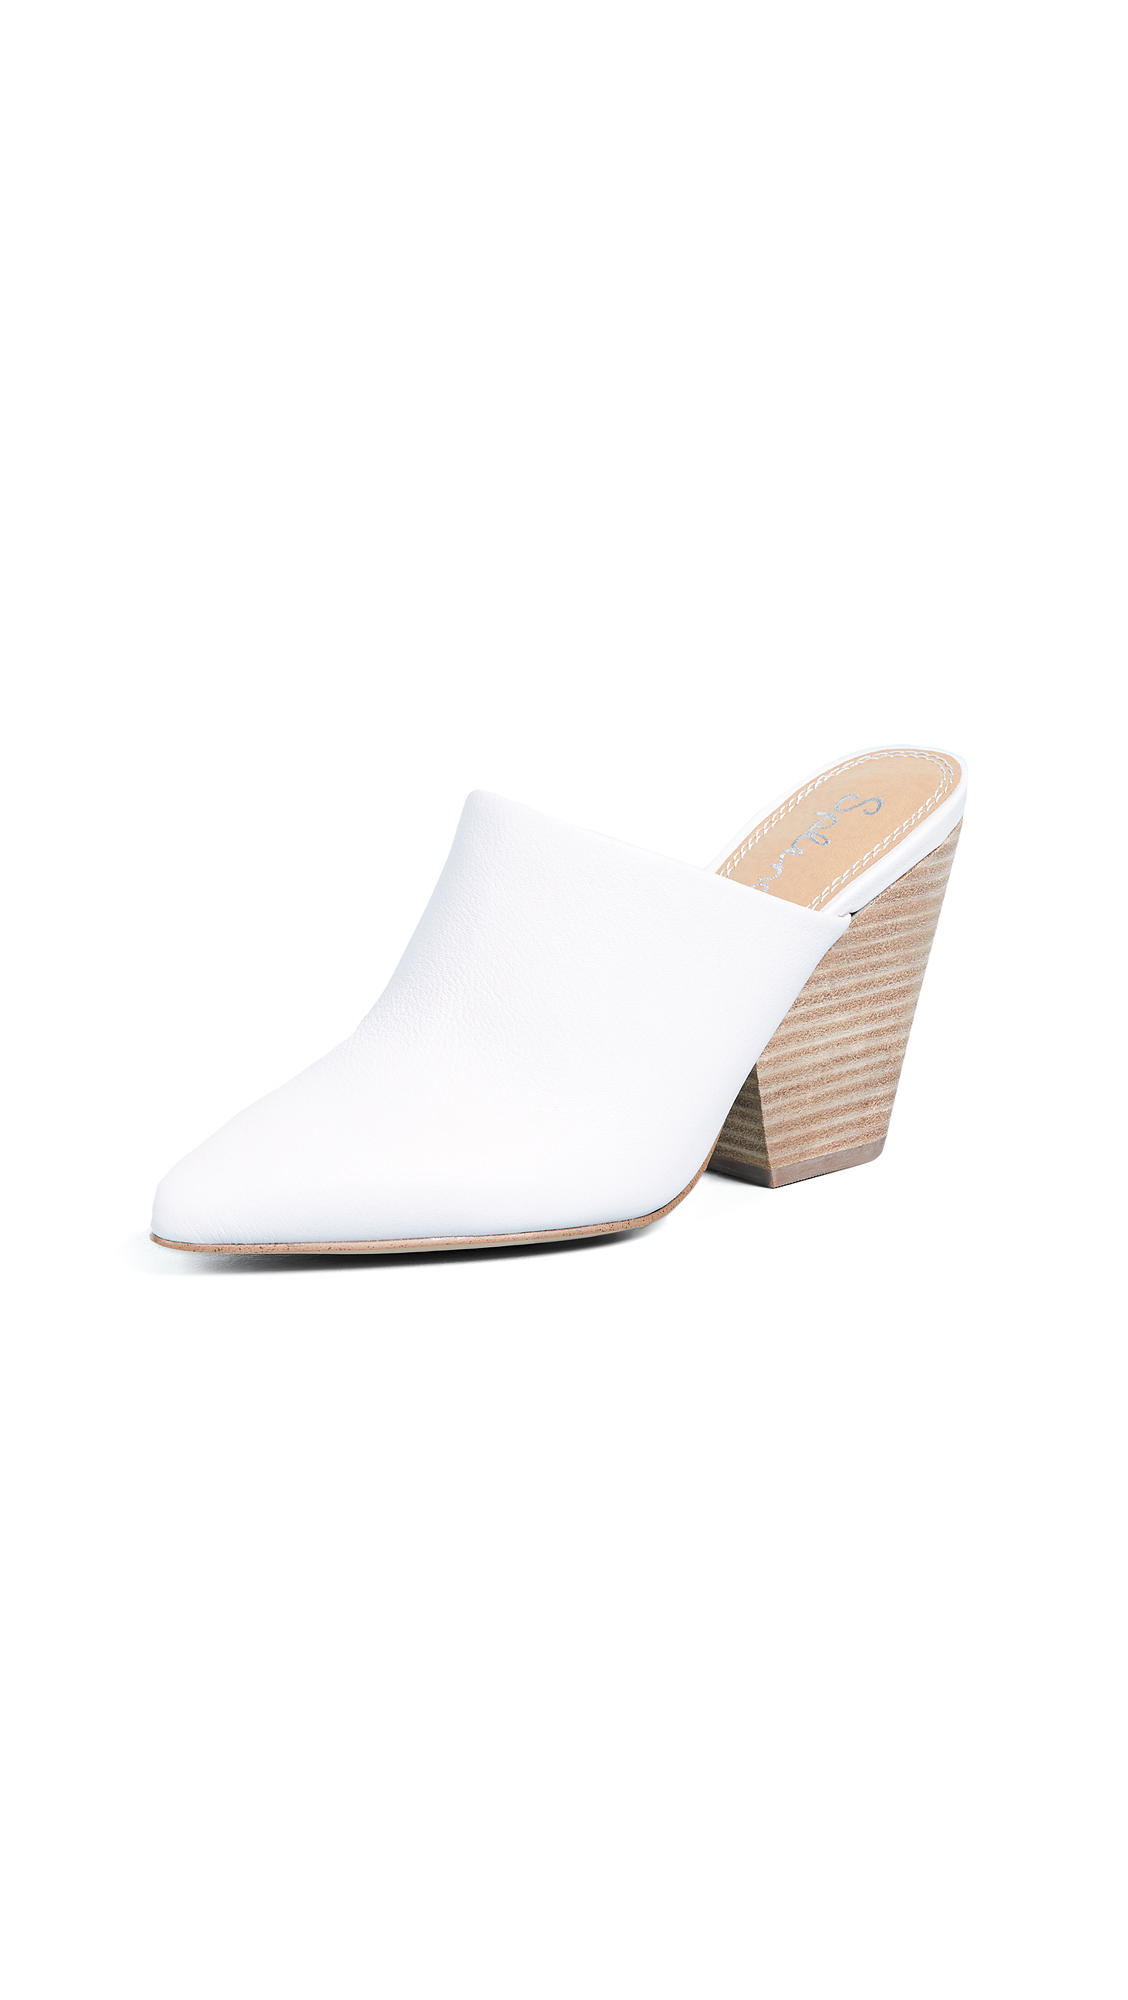 Splendid Nala Block Heel Mules - Snow White